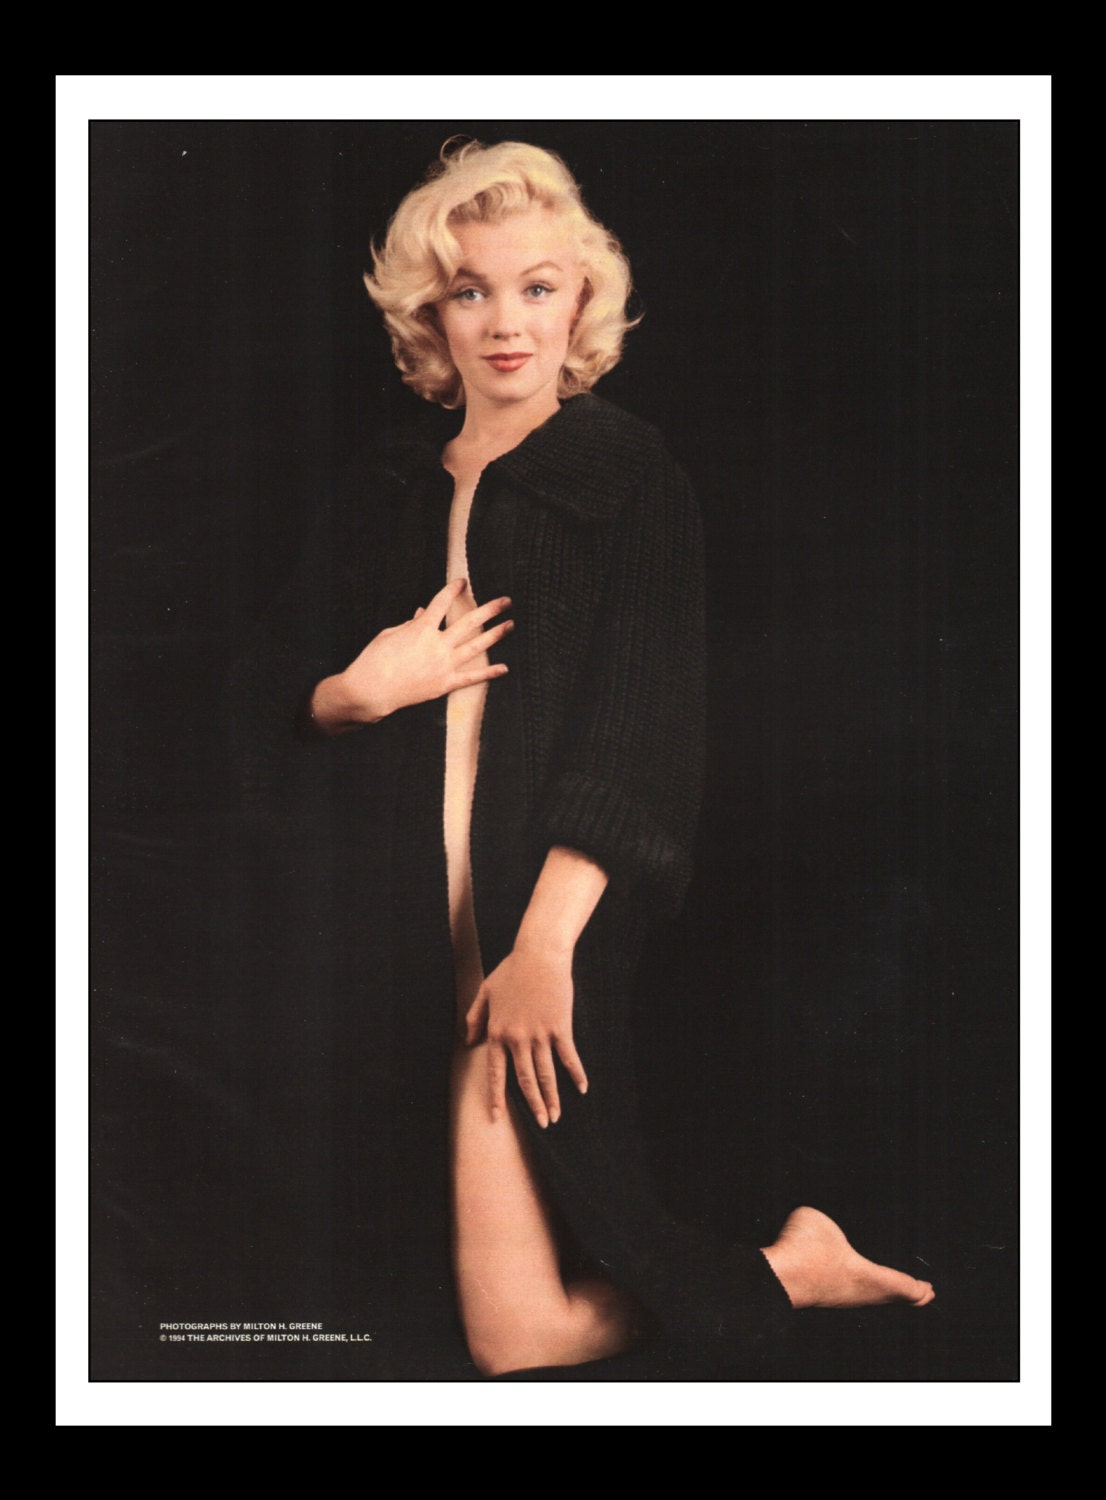 Playboy Vintage Pinup January 1997 Marilyn Monroe Sexy -8753